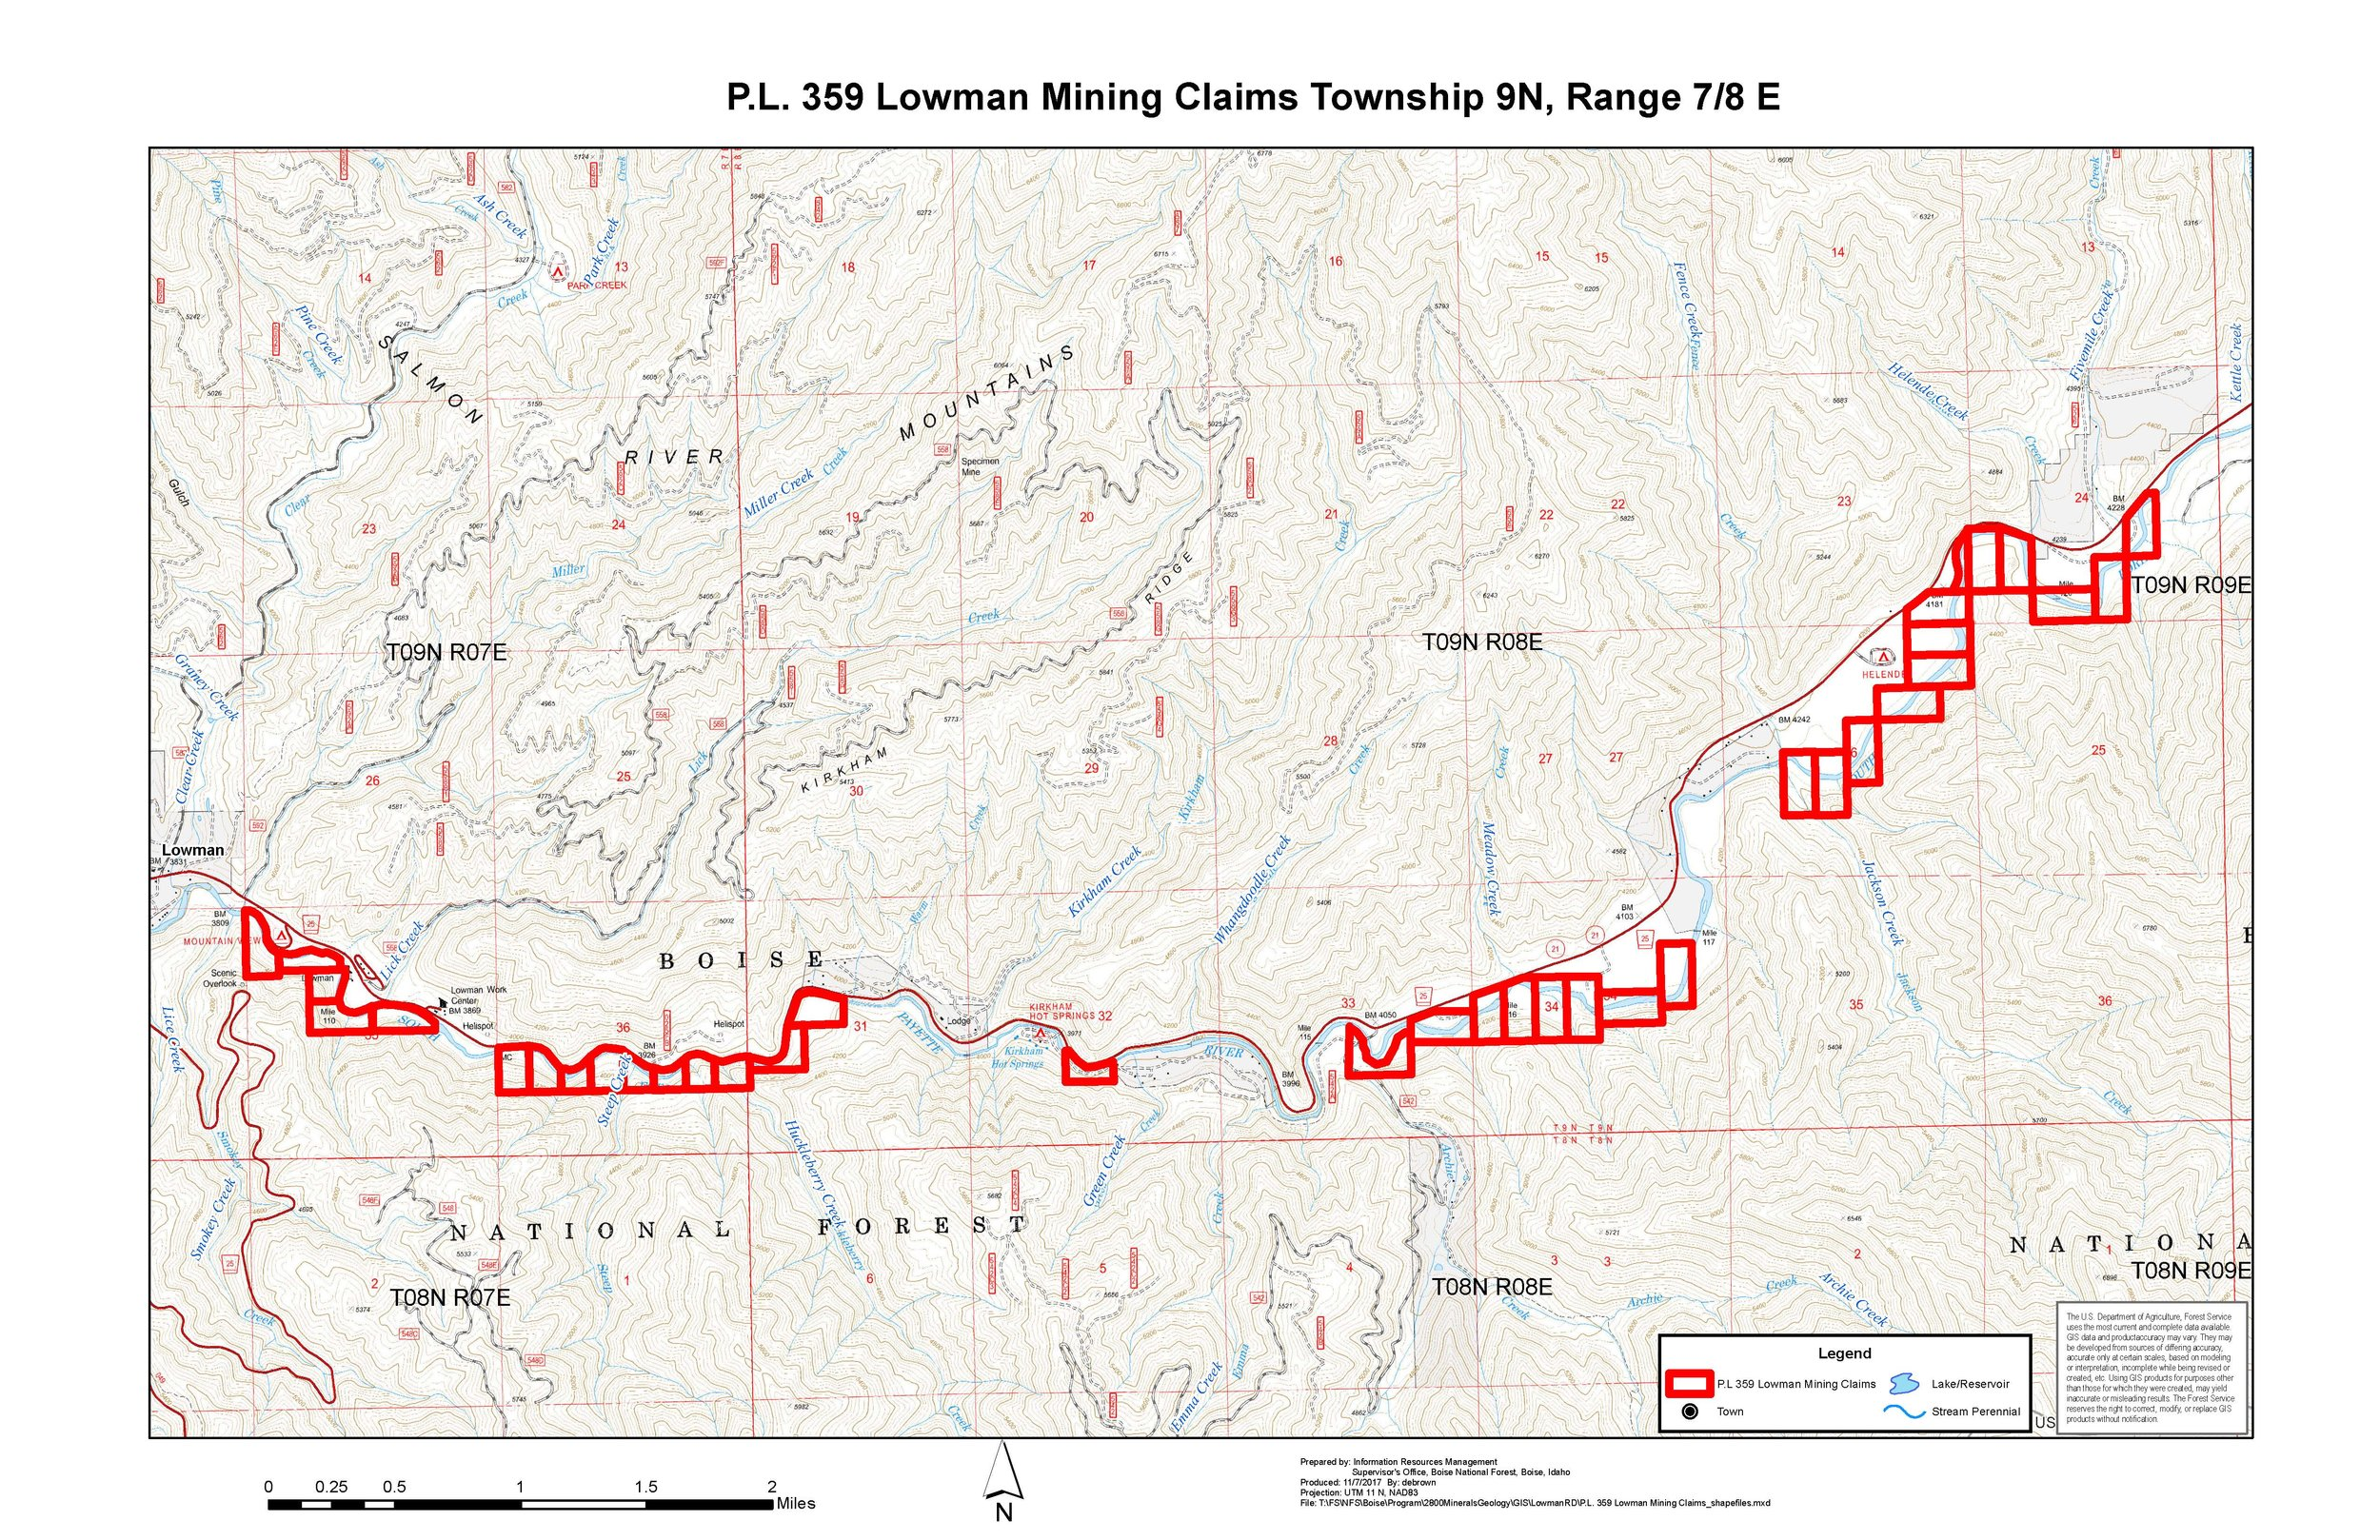 Click to expand the view of proposed mining claims along the South Fork of the Payette River near Lowman.